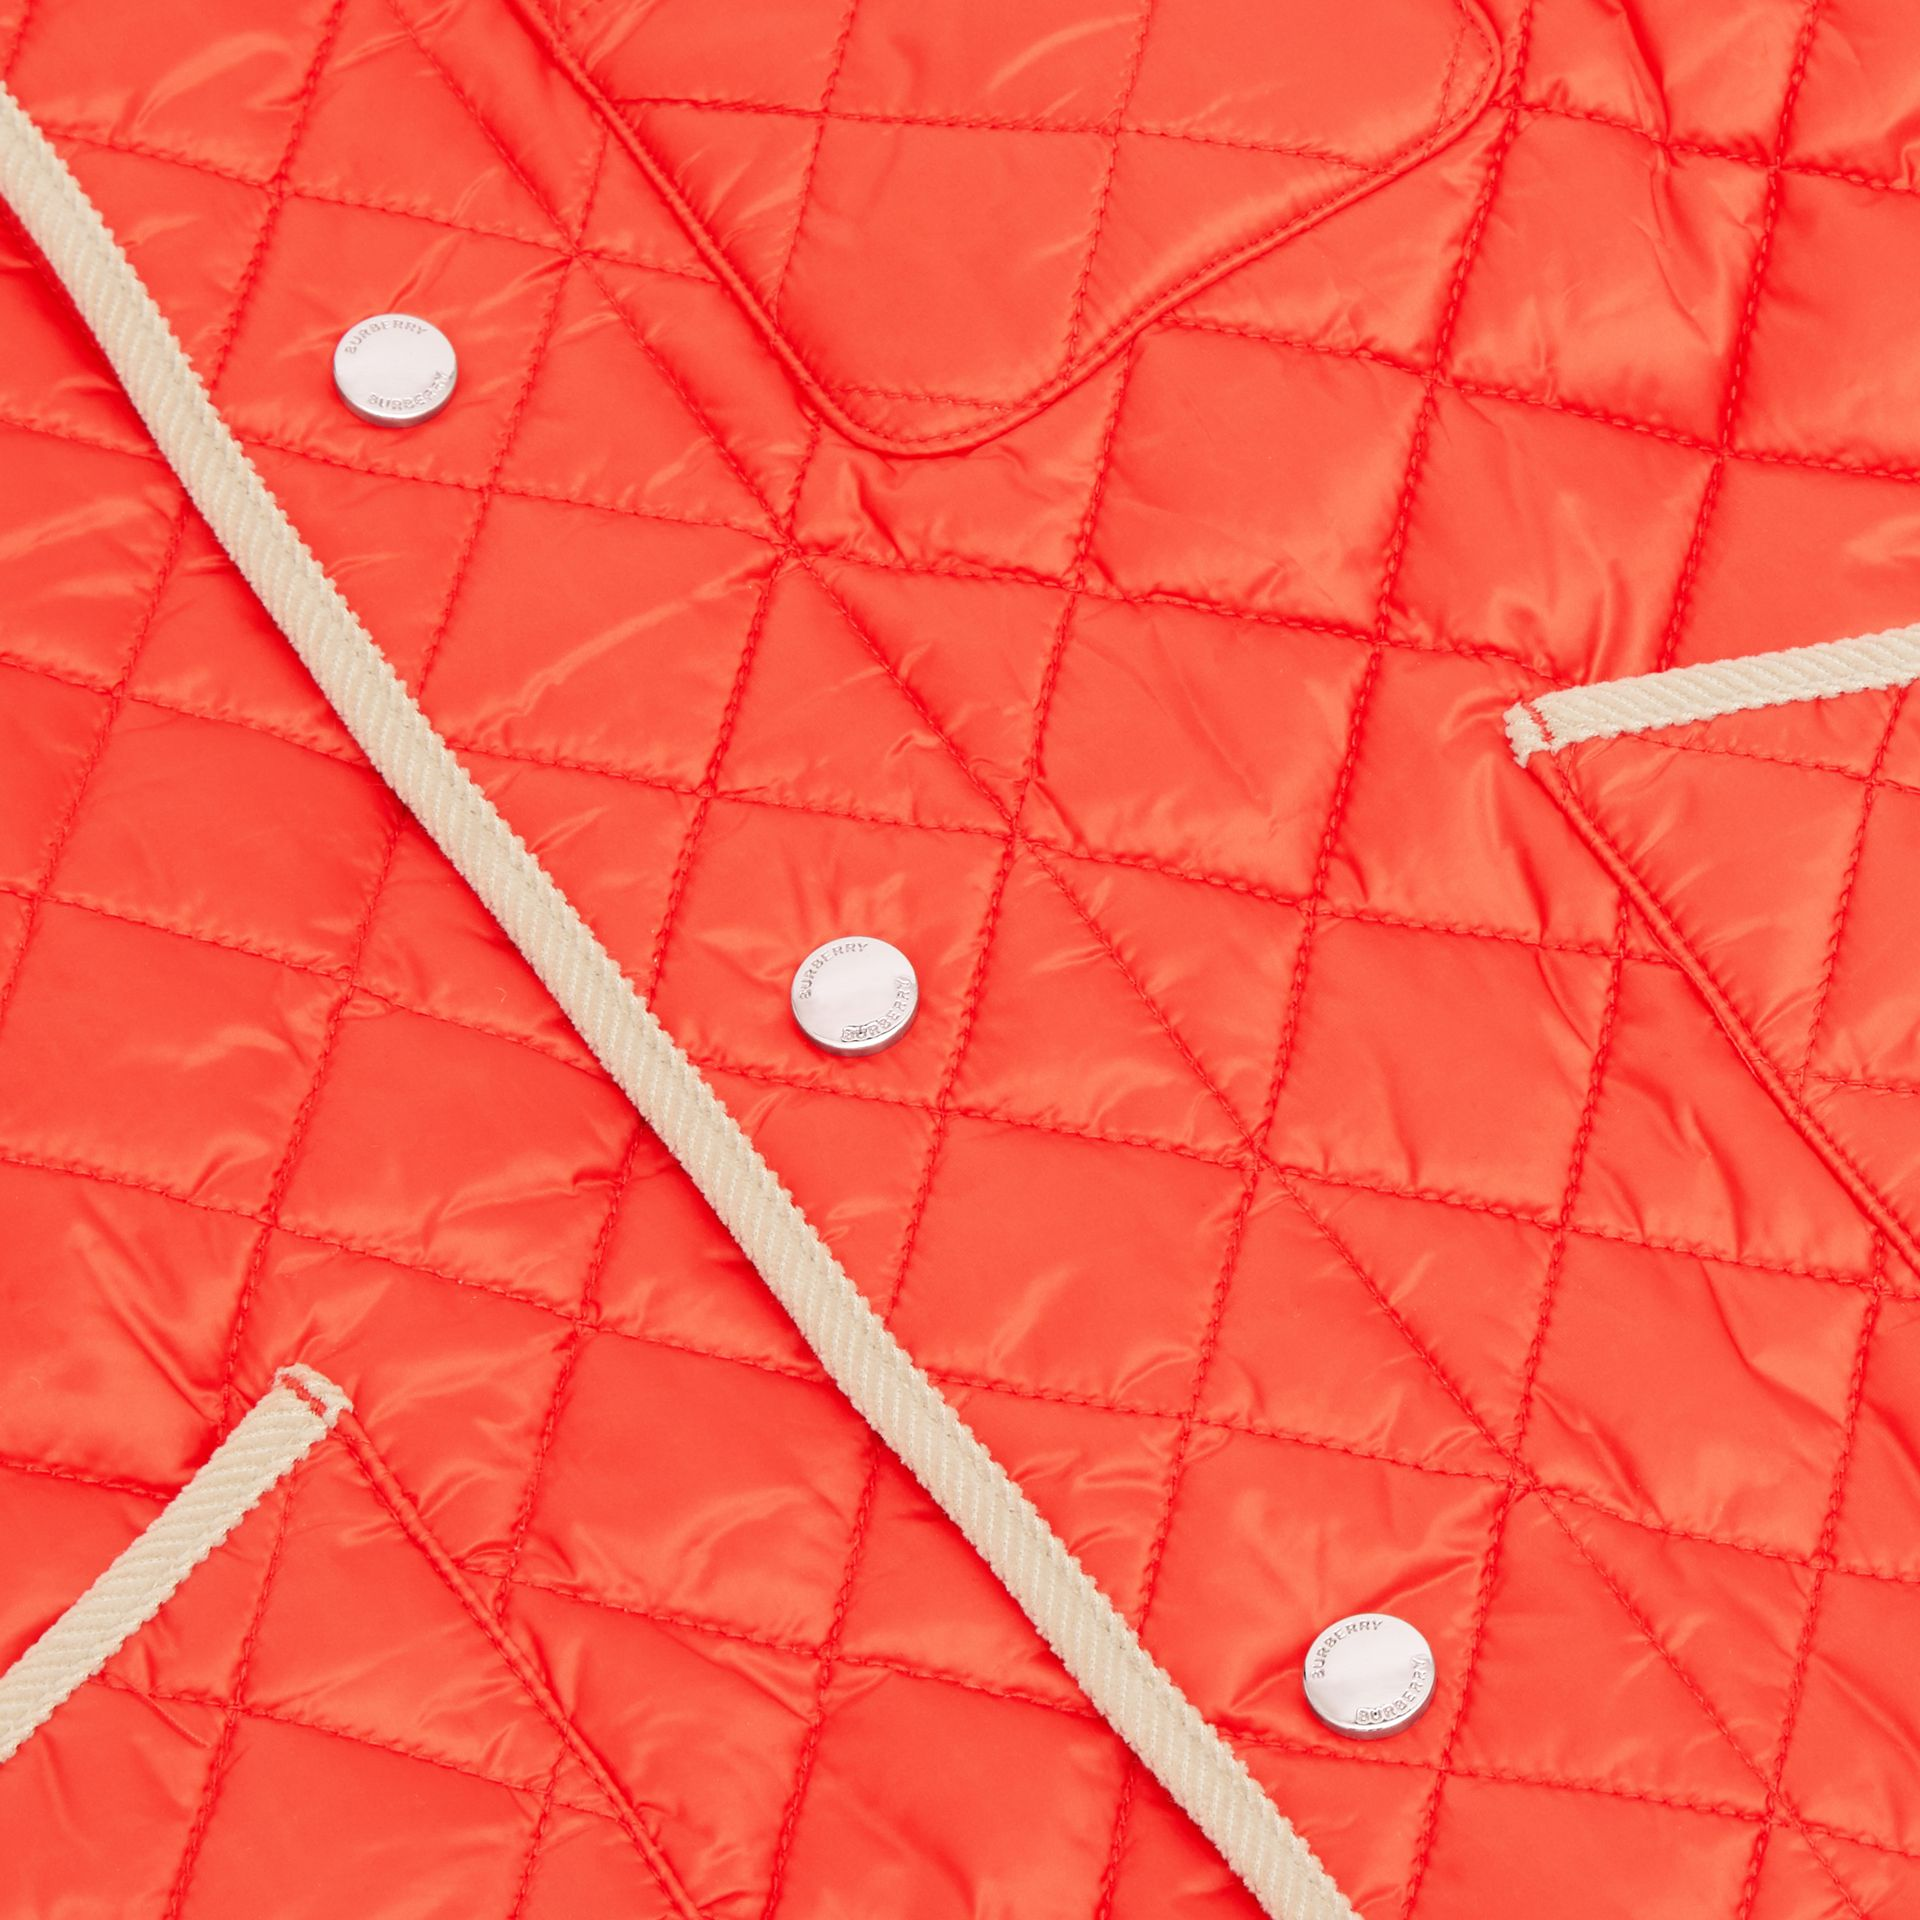 Corduroy Trim Lightweight Diamond Quilted Jacket in Bright Coral Orange | Burberry Australia - gallery image 1